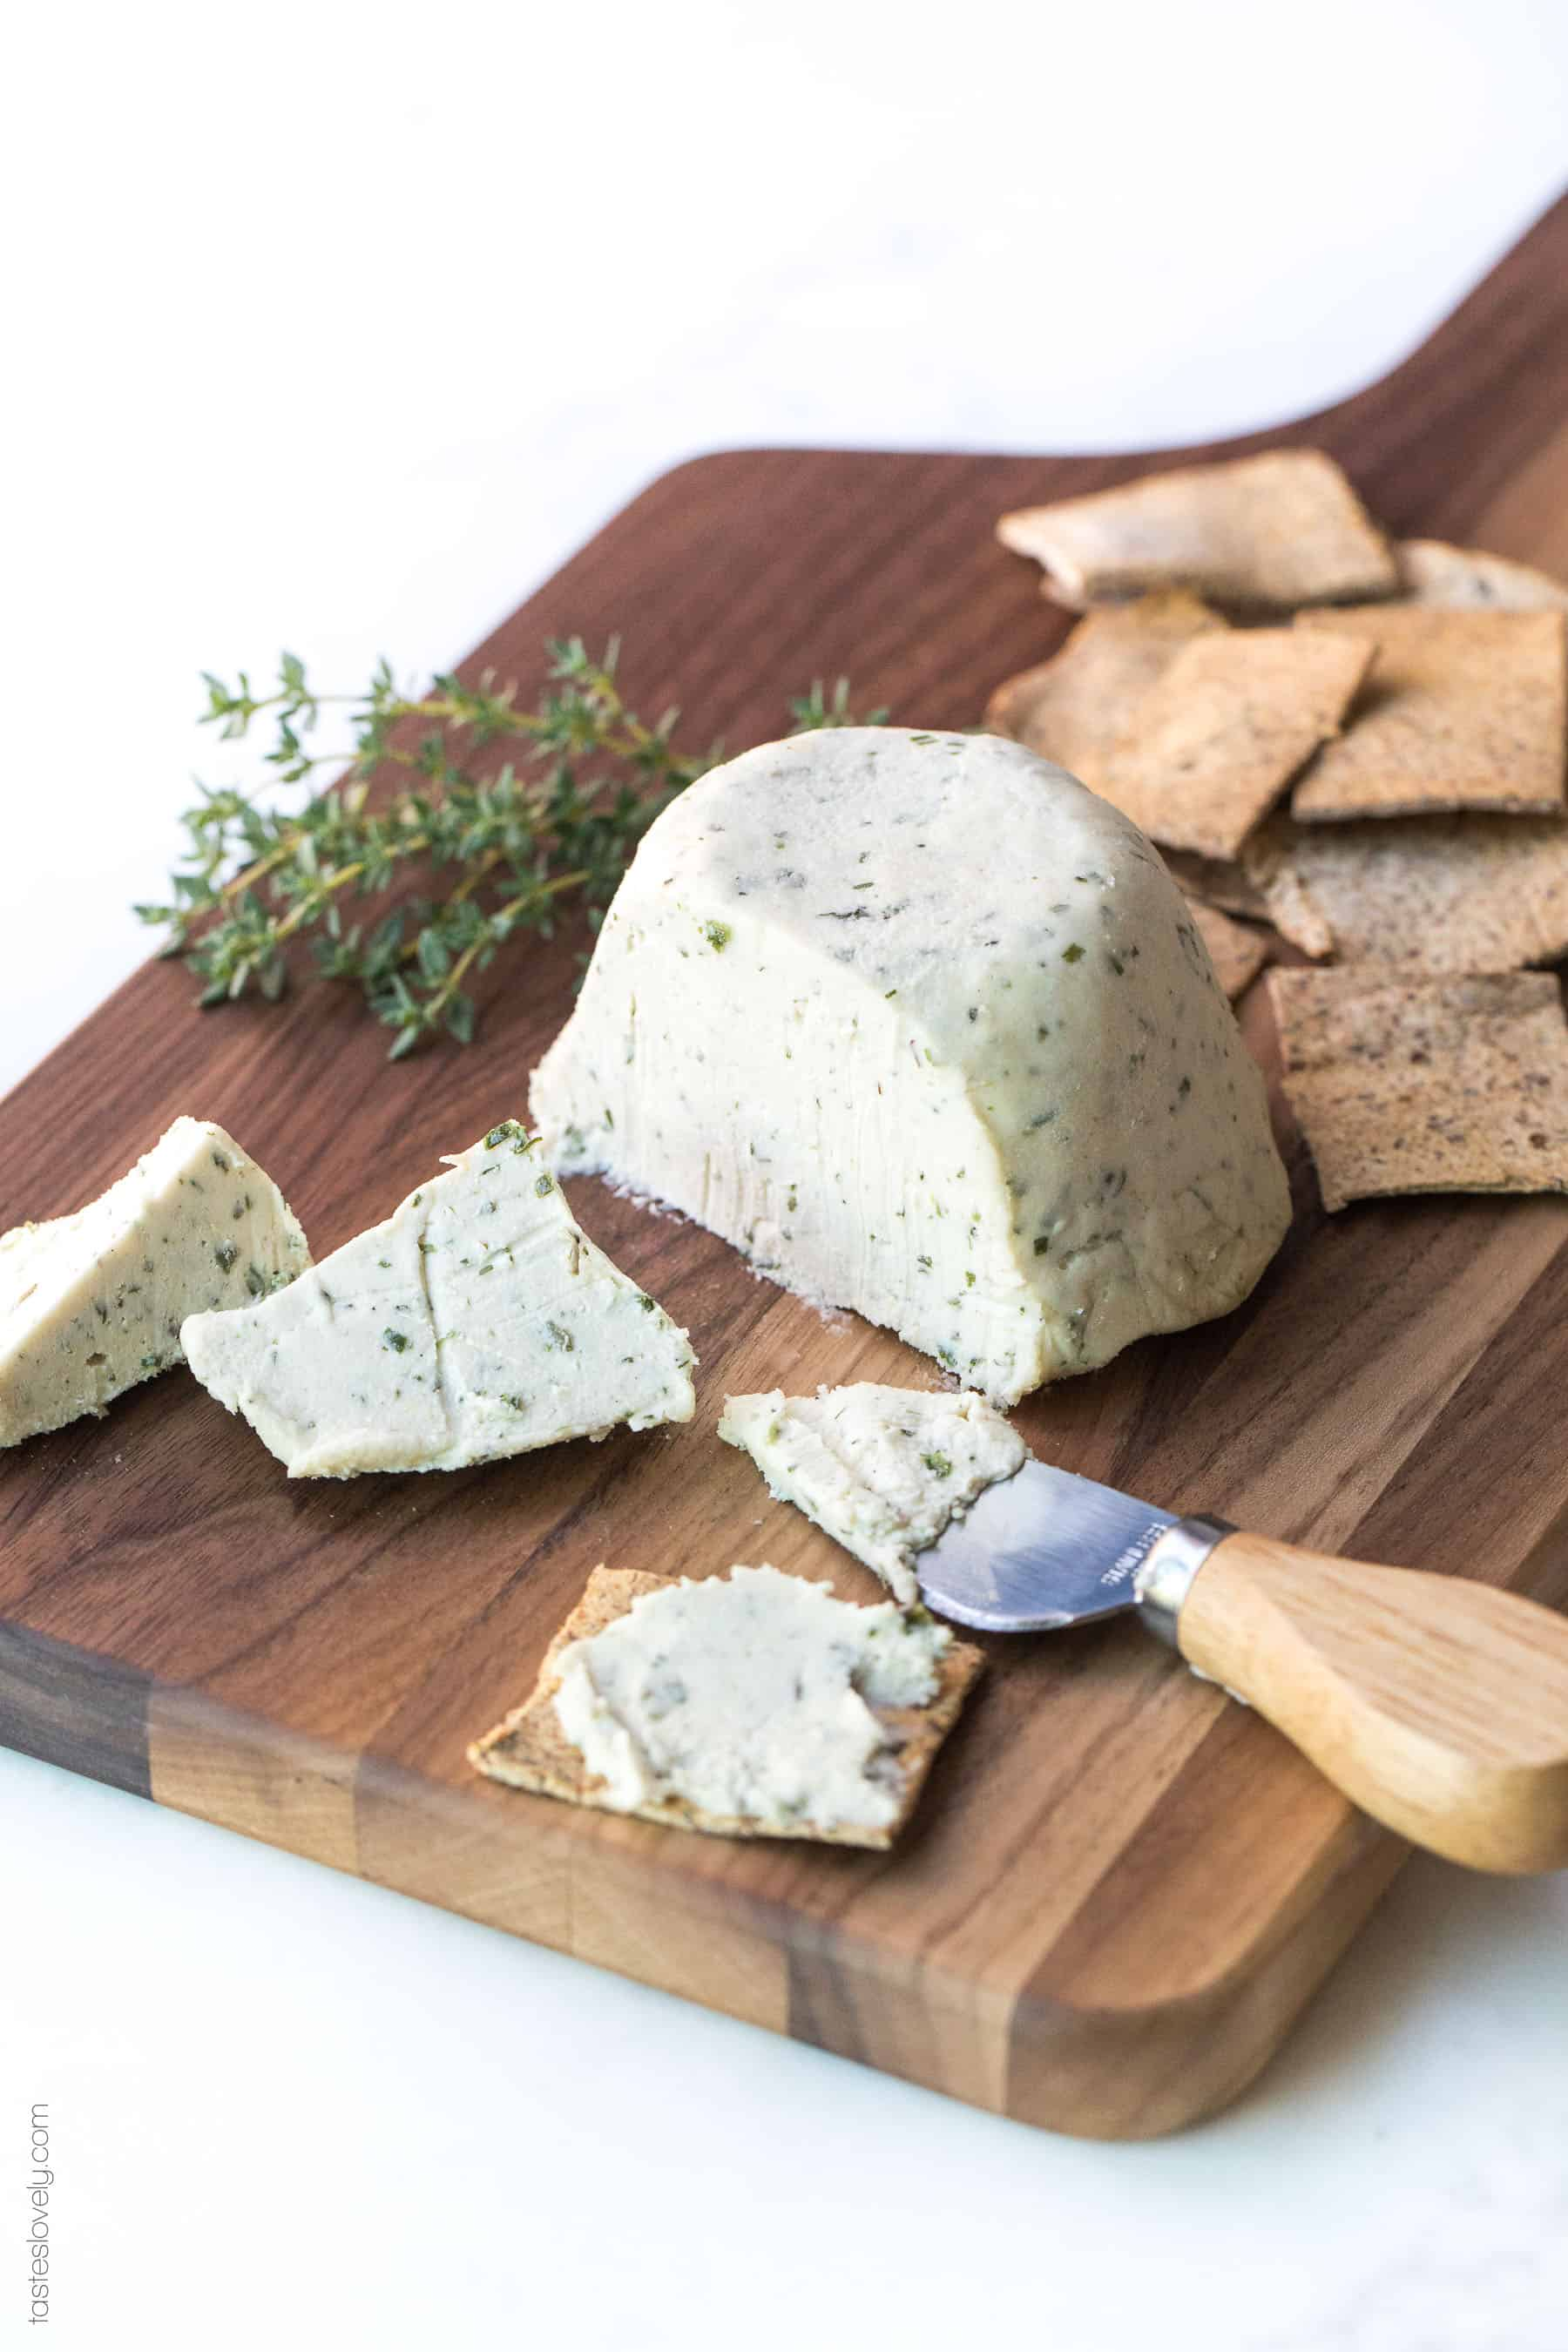 Cheese on a board sliced with crackers and herbs